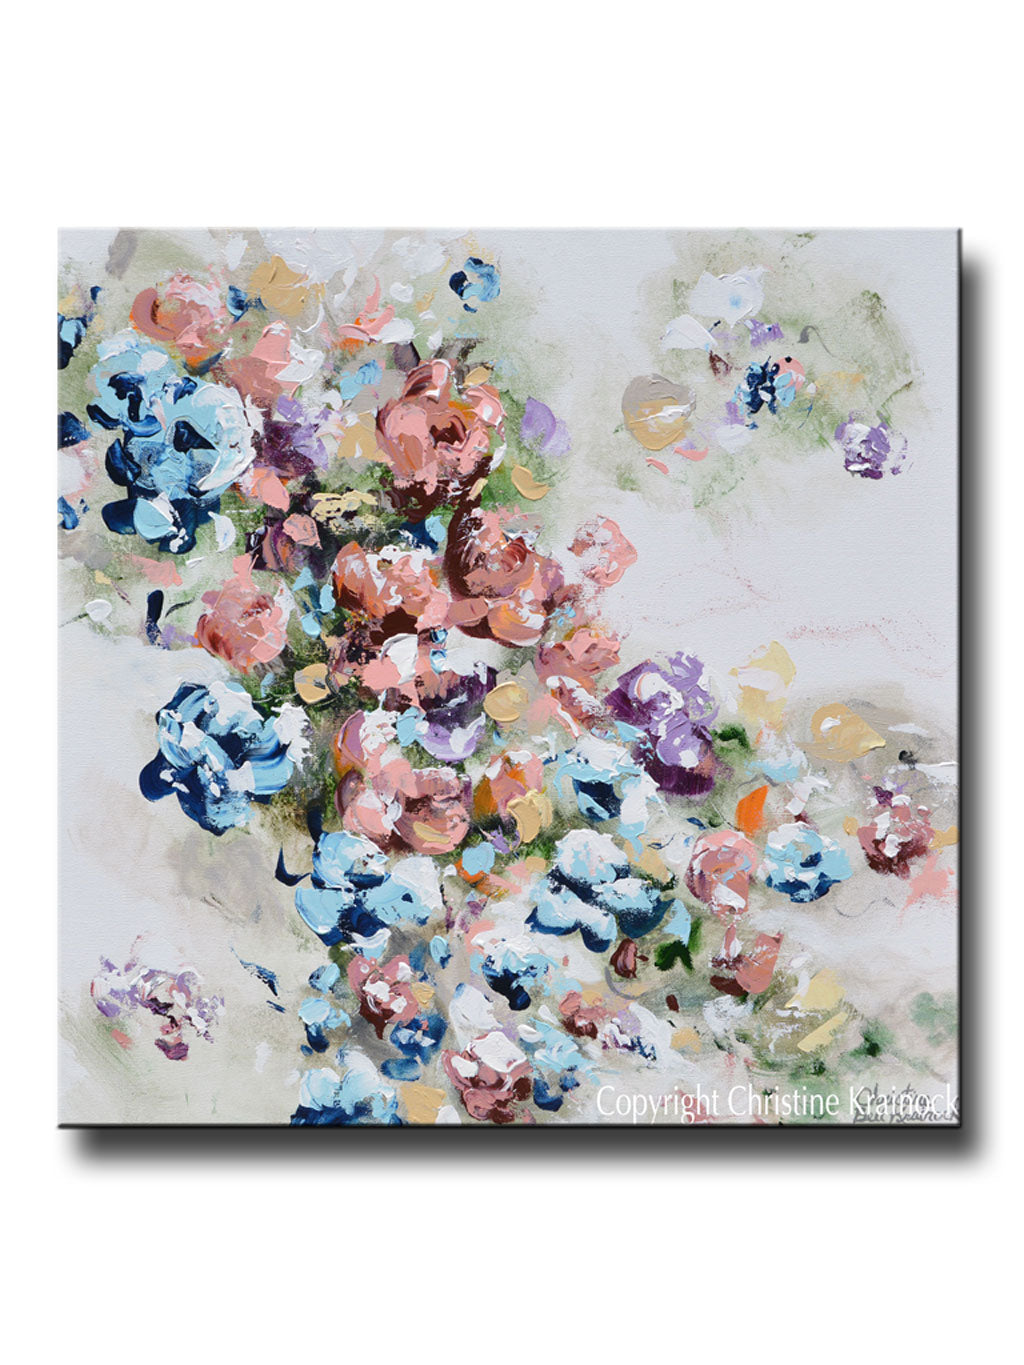 Original art abstract floral painting colorful flowers blue pink original art abstract floral painting colorful navy blue white pink flowers sweetpea wall decor 24x24 mightylinksfo